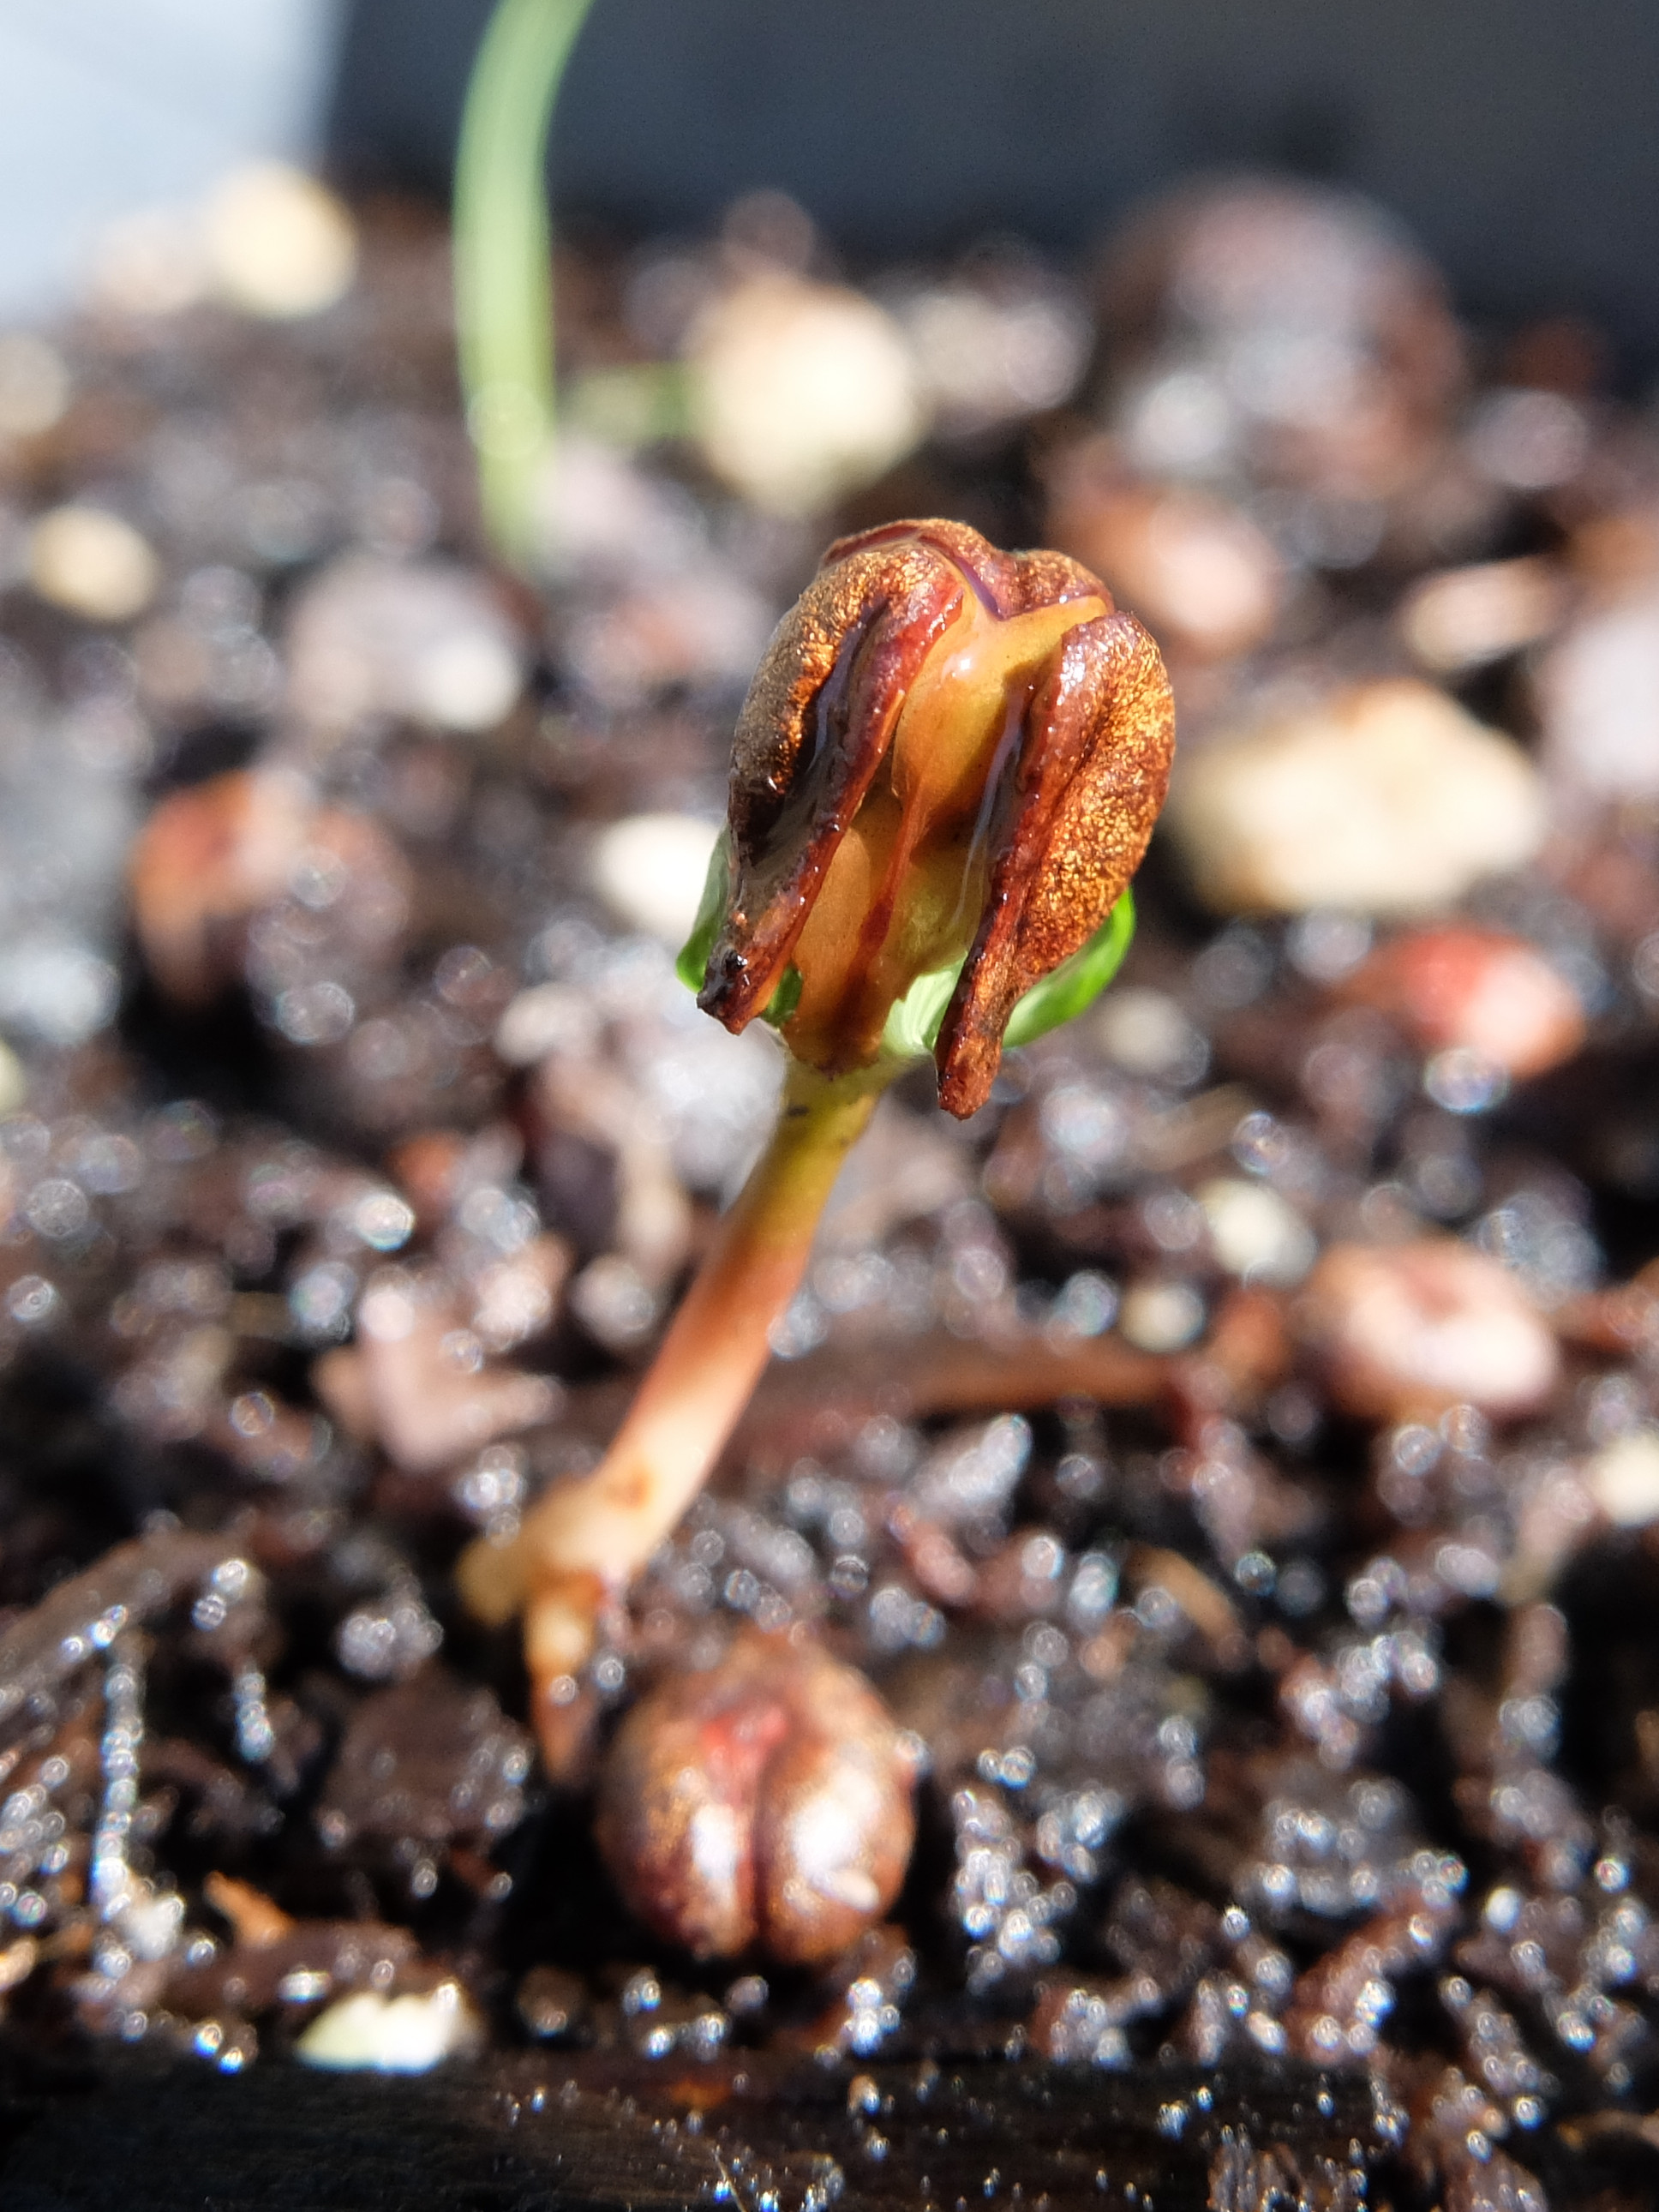 Grape seed germinating